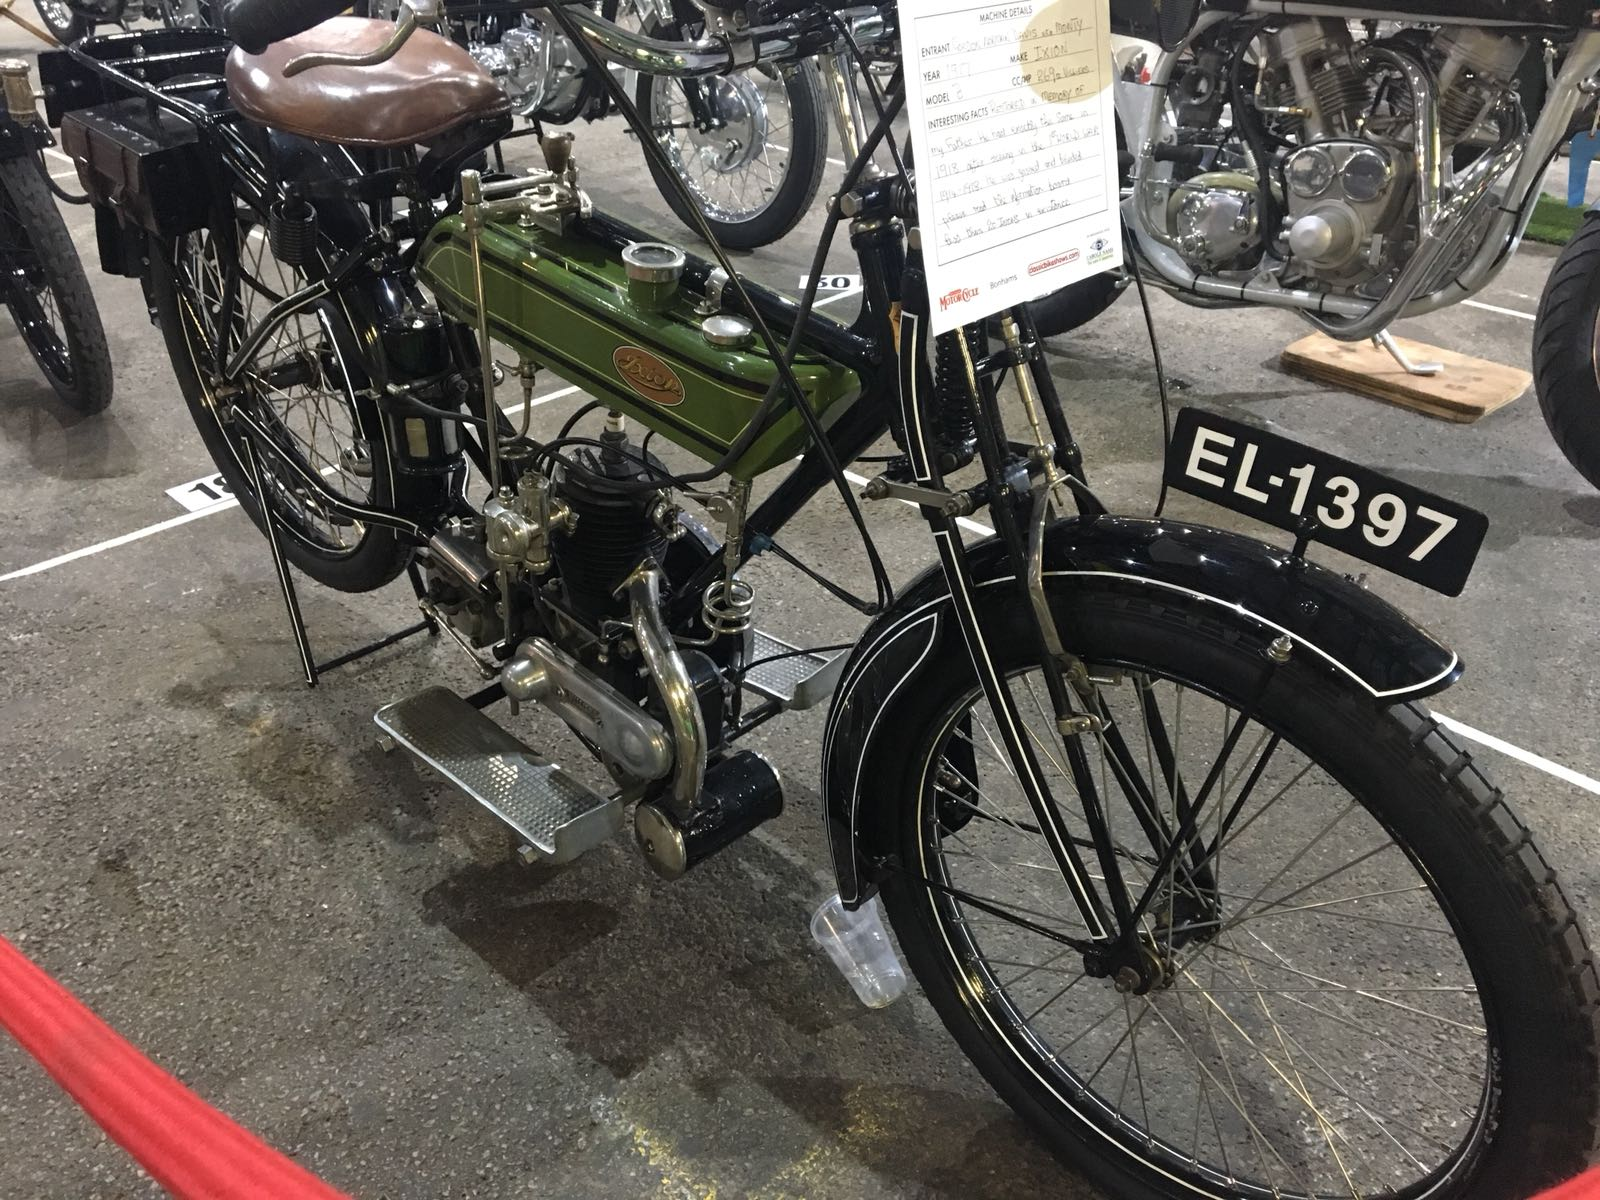 1917 Ixion B 269cc built in memory of a father who used the same bike in 1918 after WWI